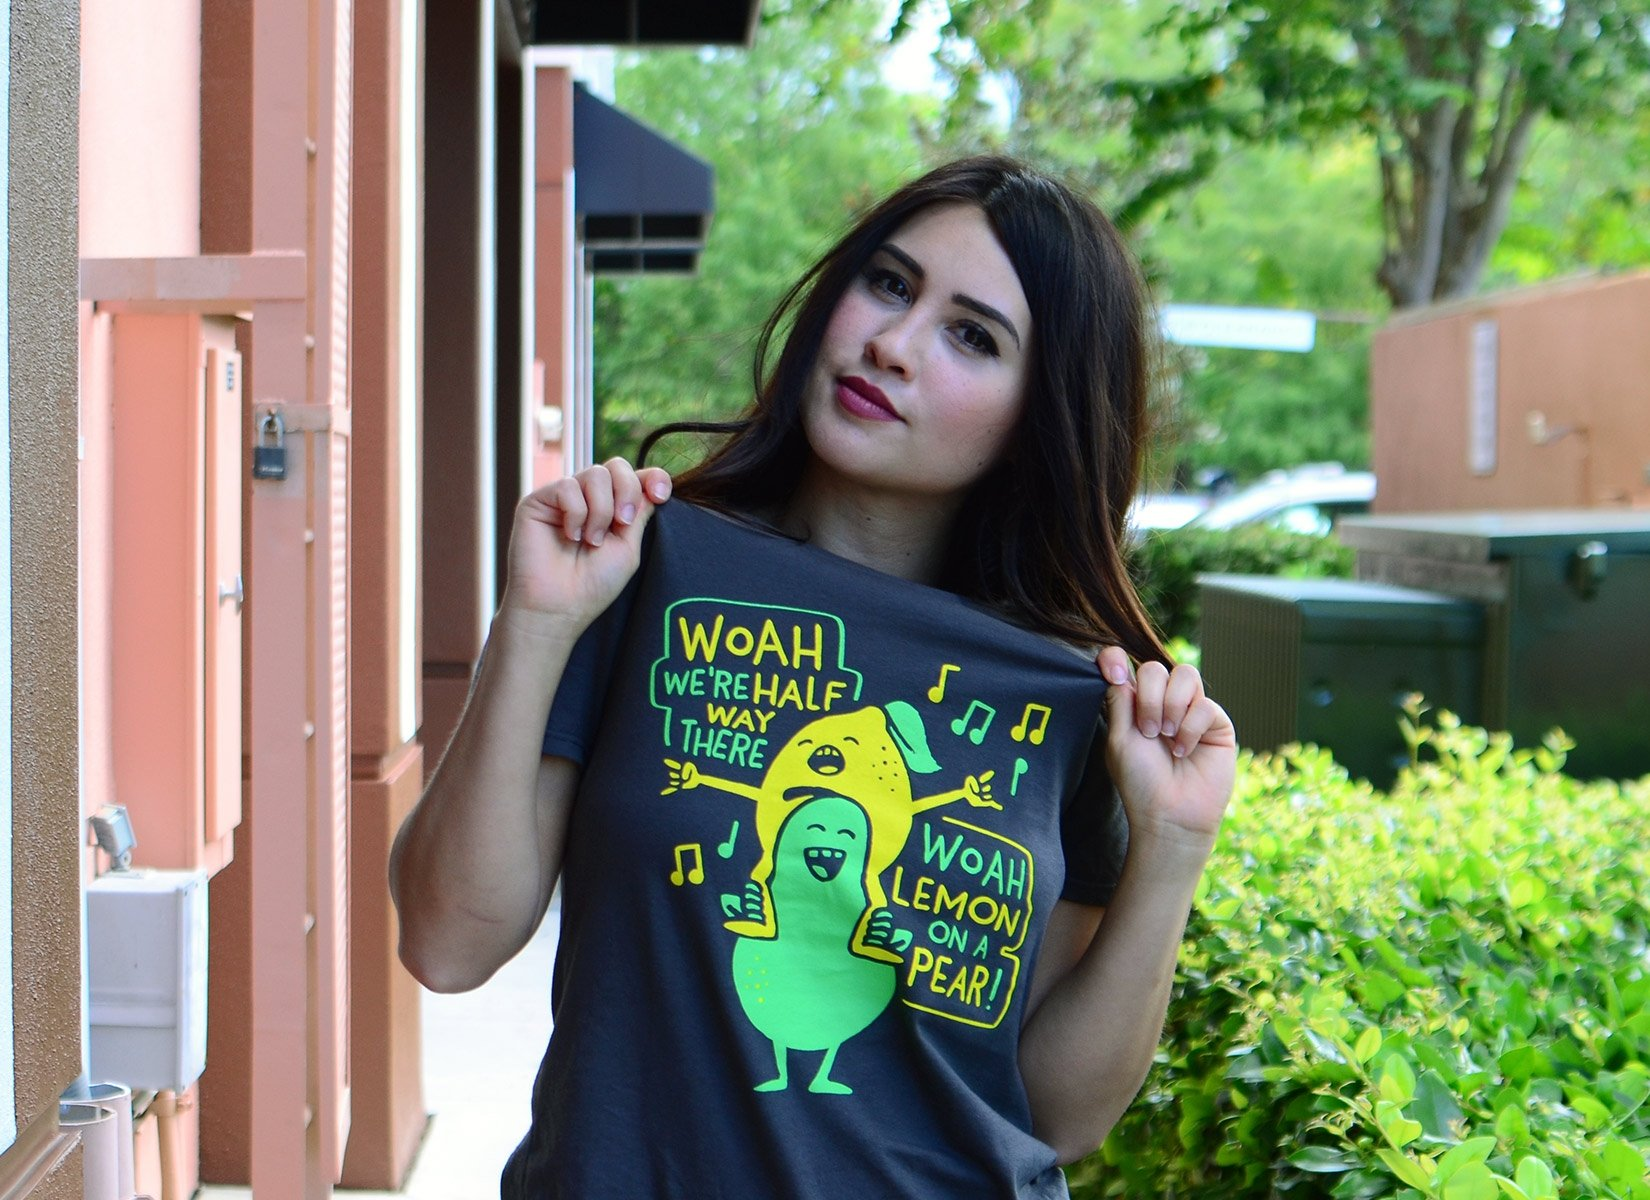 Lemon On A Pear on Womens T-Shirt